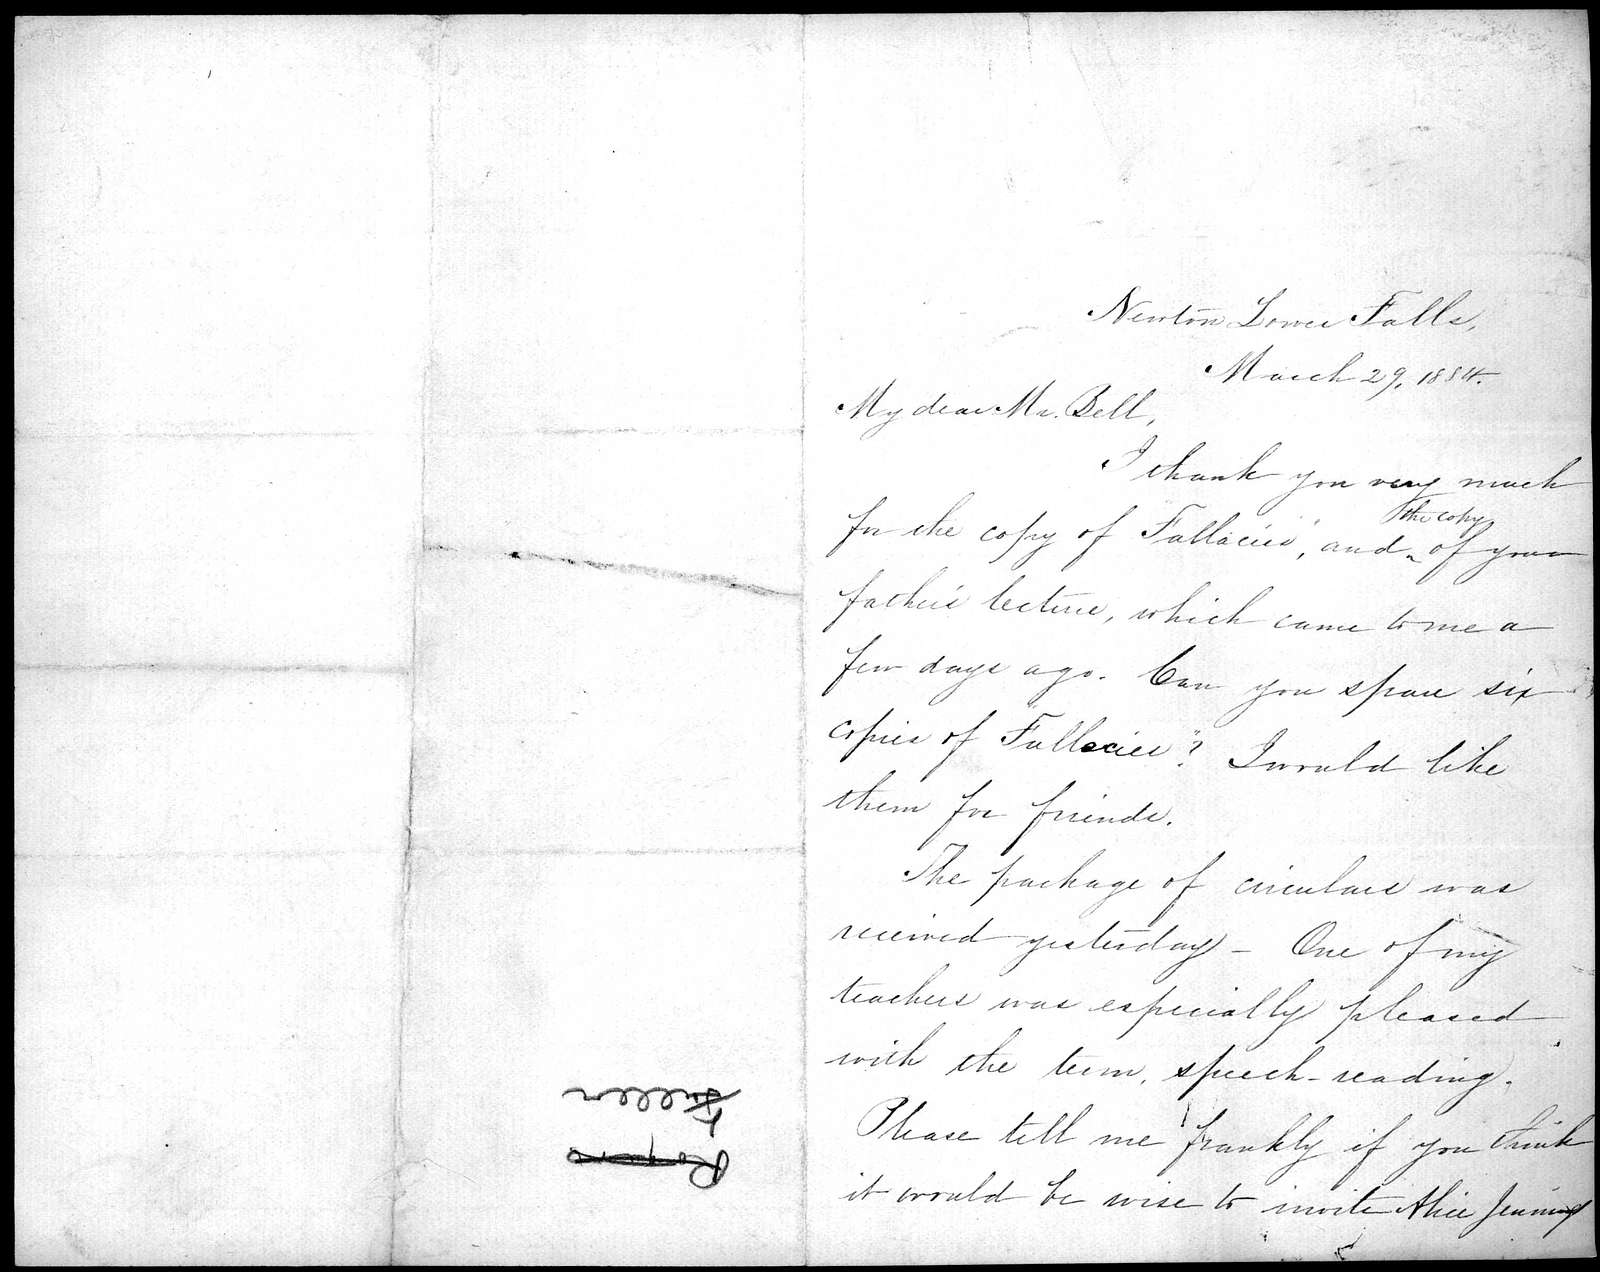 Letter from Sarah Fuller to Alexander Graham Bell, March 29, 1884